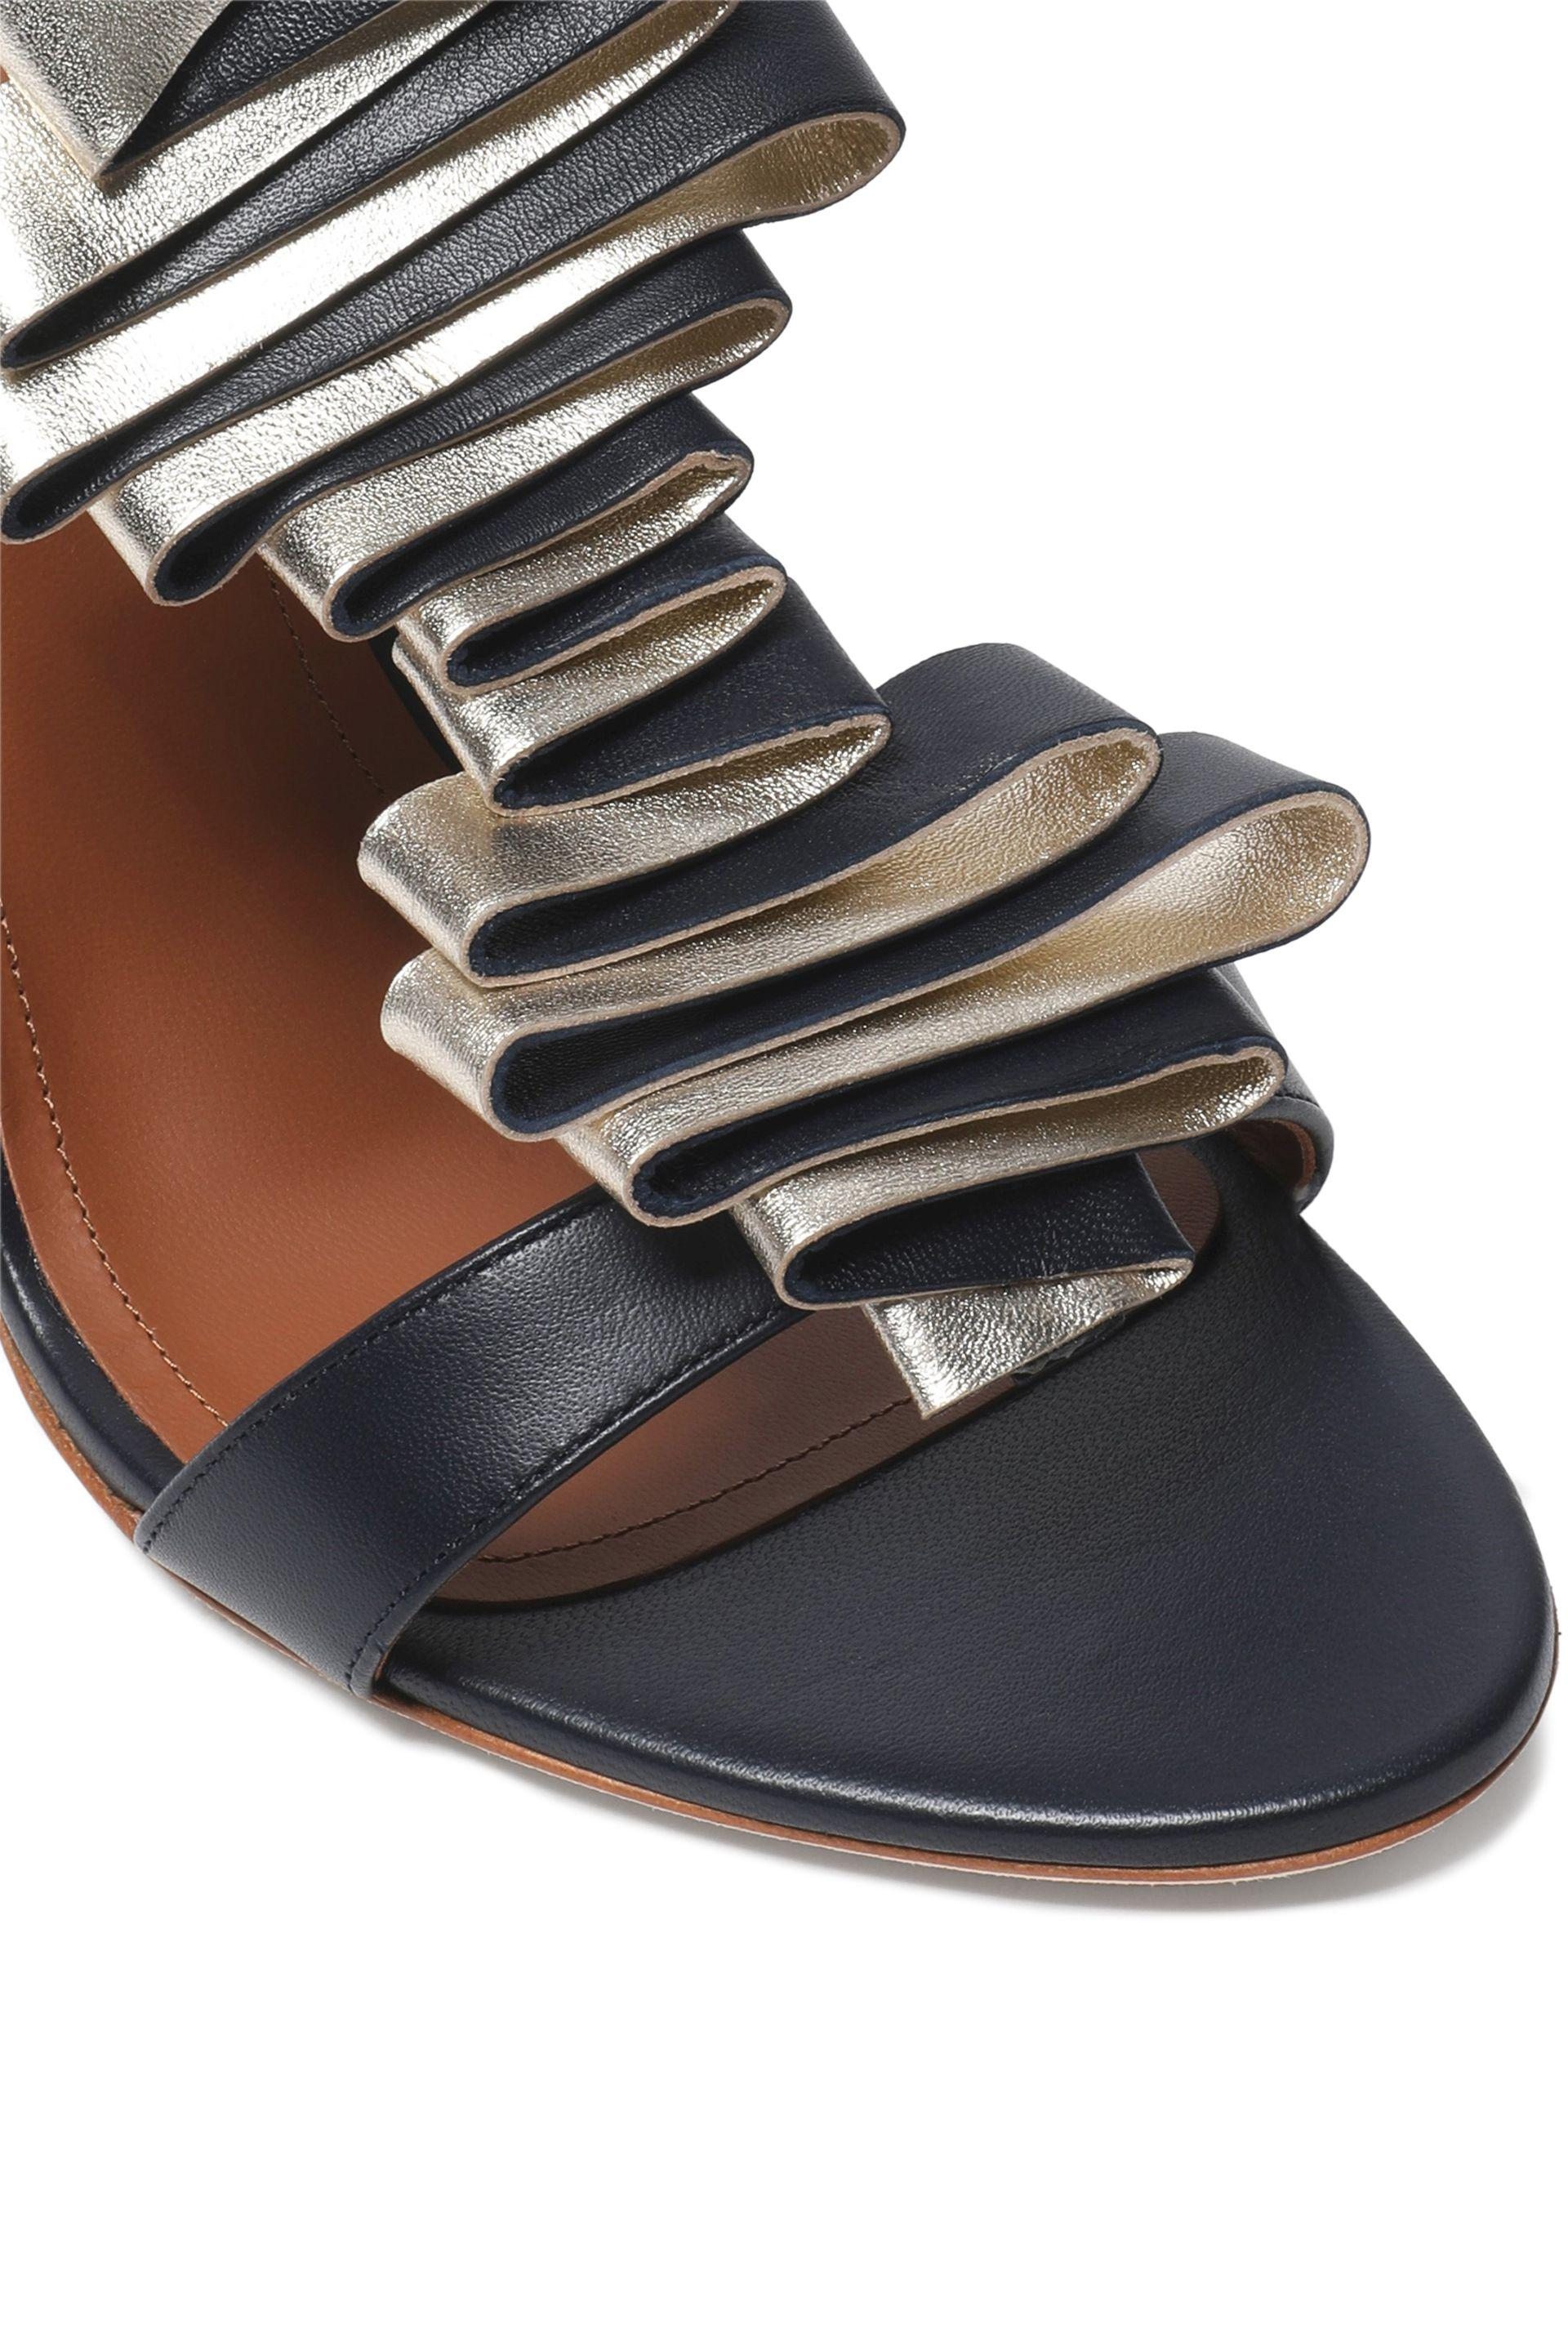 MALONE SOULIERS Leather Sandals with Metallic Ruffles Buy Cheap 2018 Free Shipping Explore Finishline Cheap Online Largest Supplier Buy Cheap Find Great FDttSL7FZM